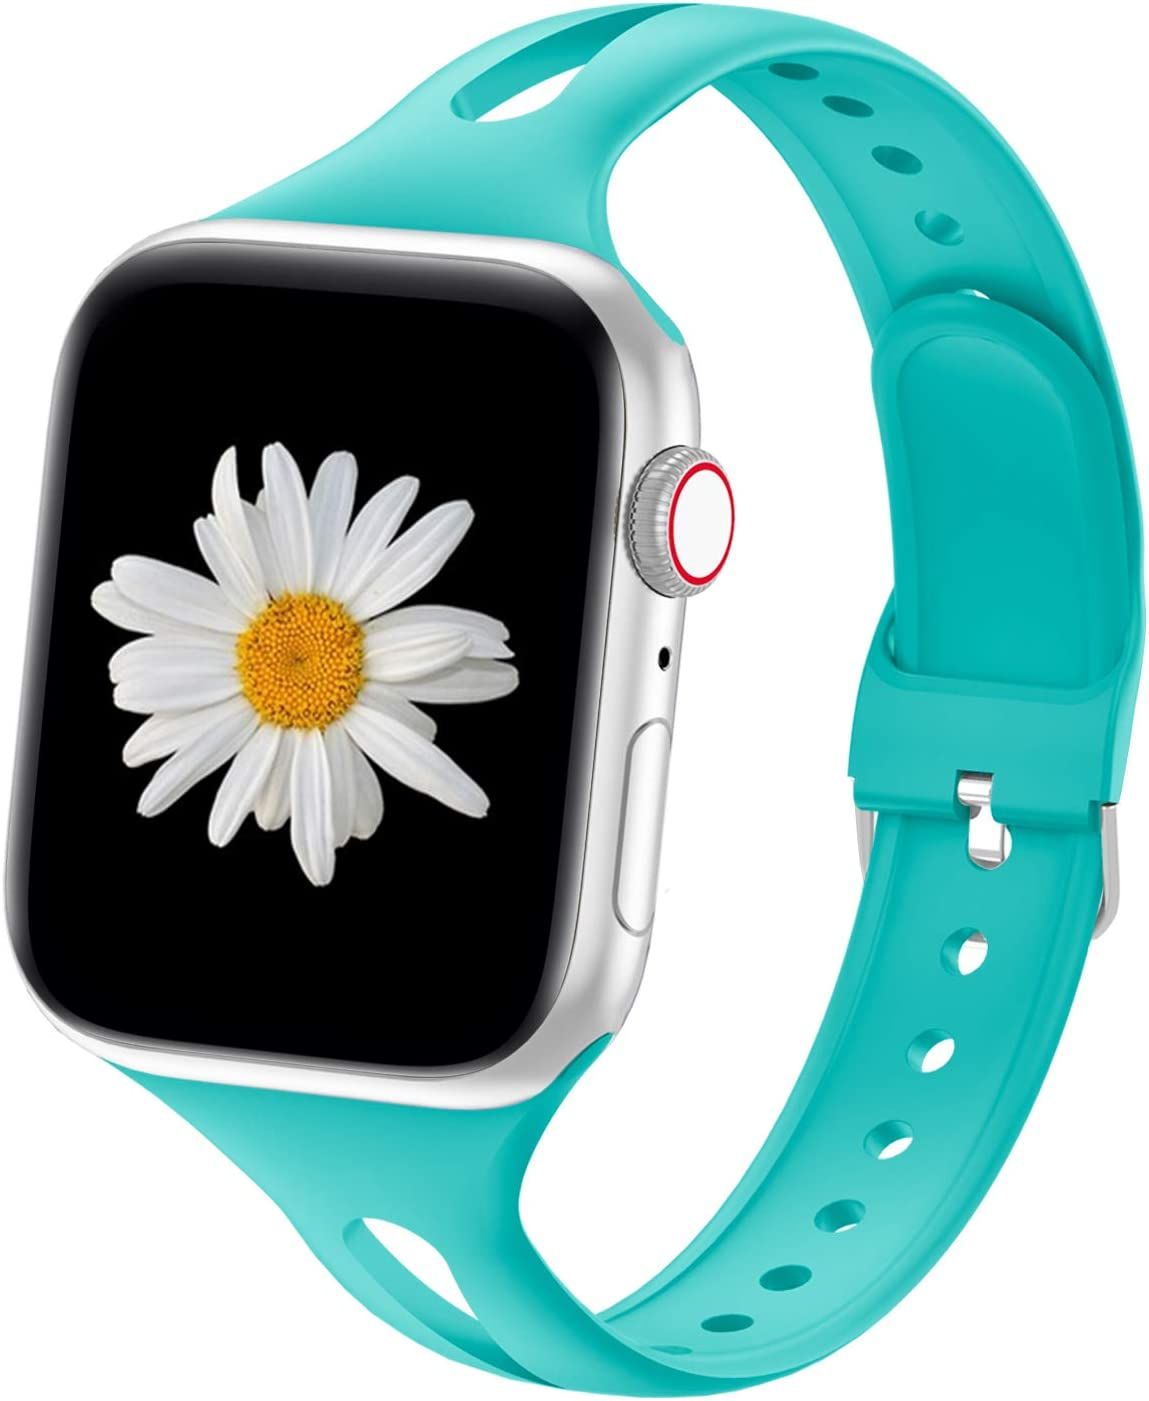 YAXIN Compatible with Apple Watch Bands 38mm 40mm 42mm 44mm, iWatch Bands Women Men Slim Thin Narrow Silicone Sport Bands Replacement Wristbands for Apple Watch SE, Series 6 5 4 3 2 1, Teal